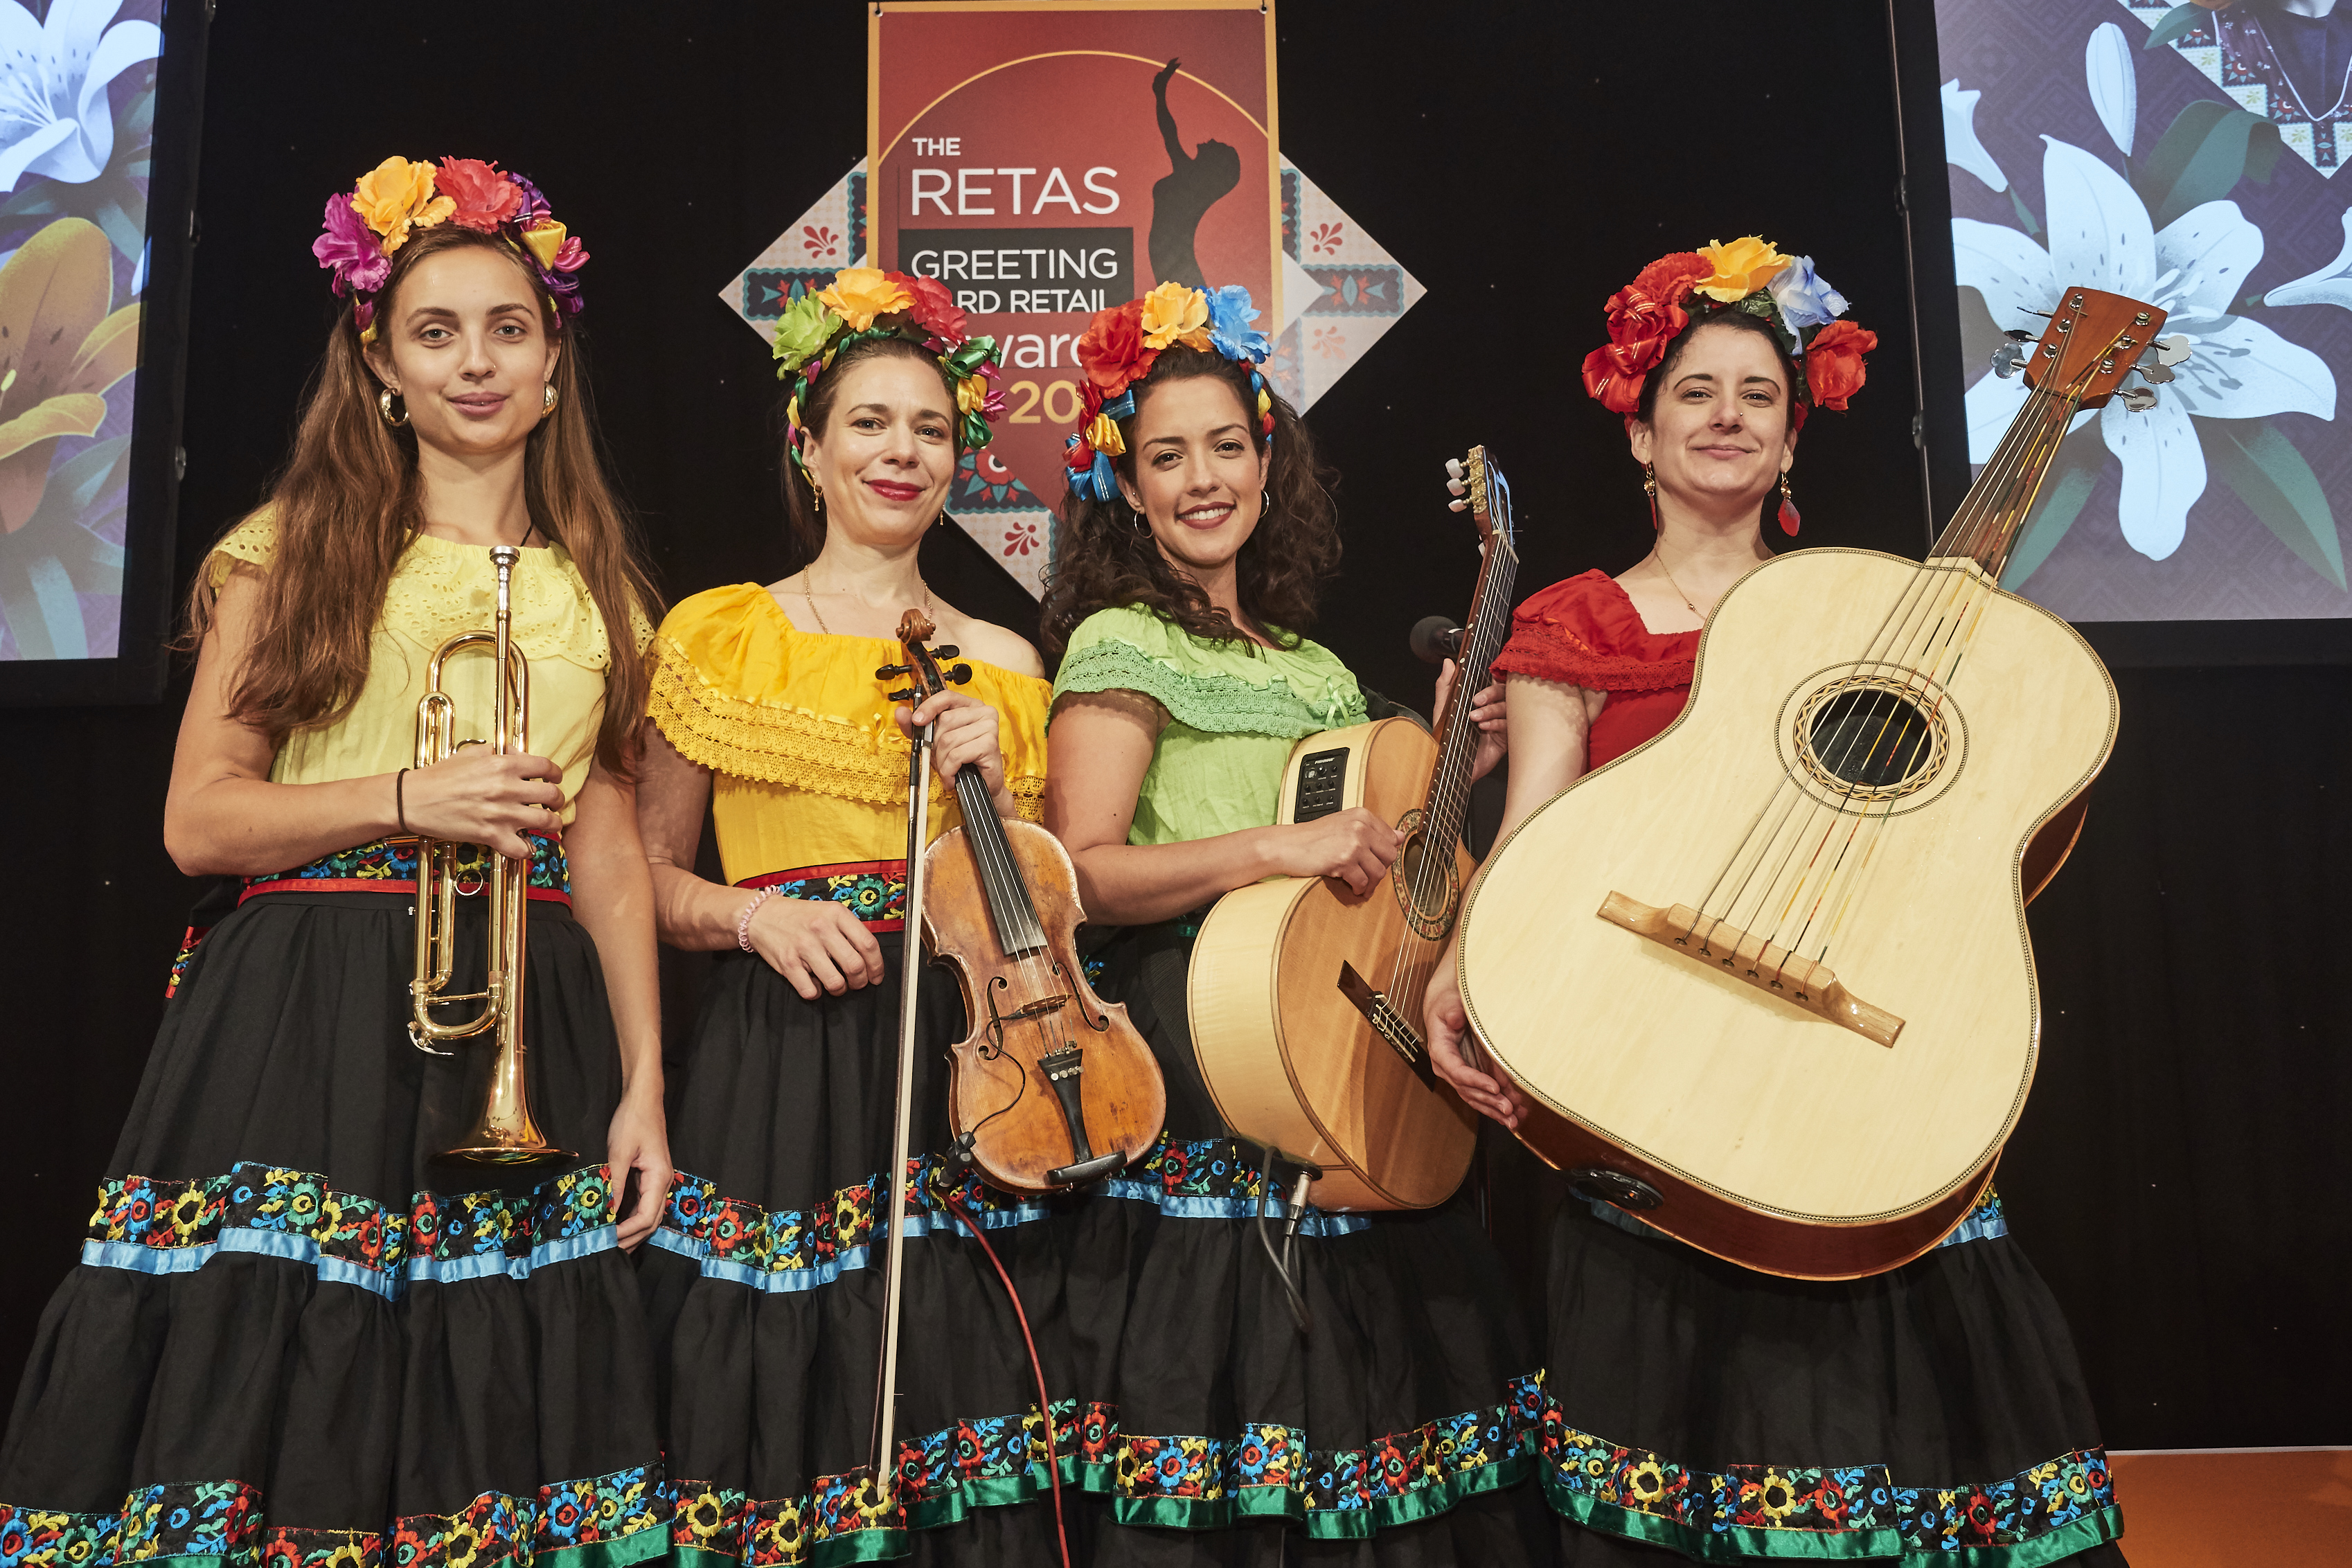 Above: The Adelitas all-female mariachi band hit the high notes at The Retas.